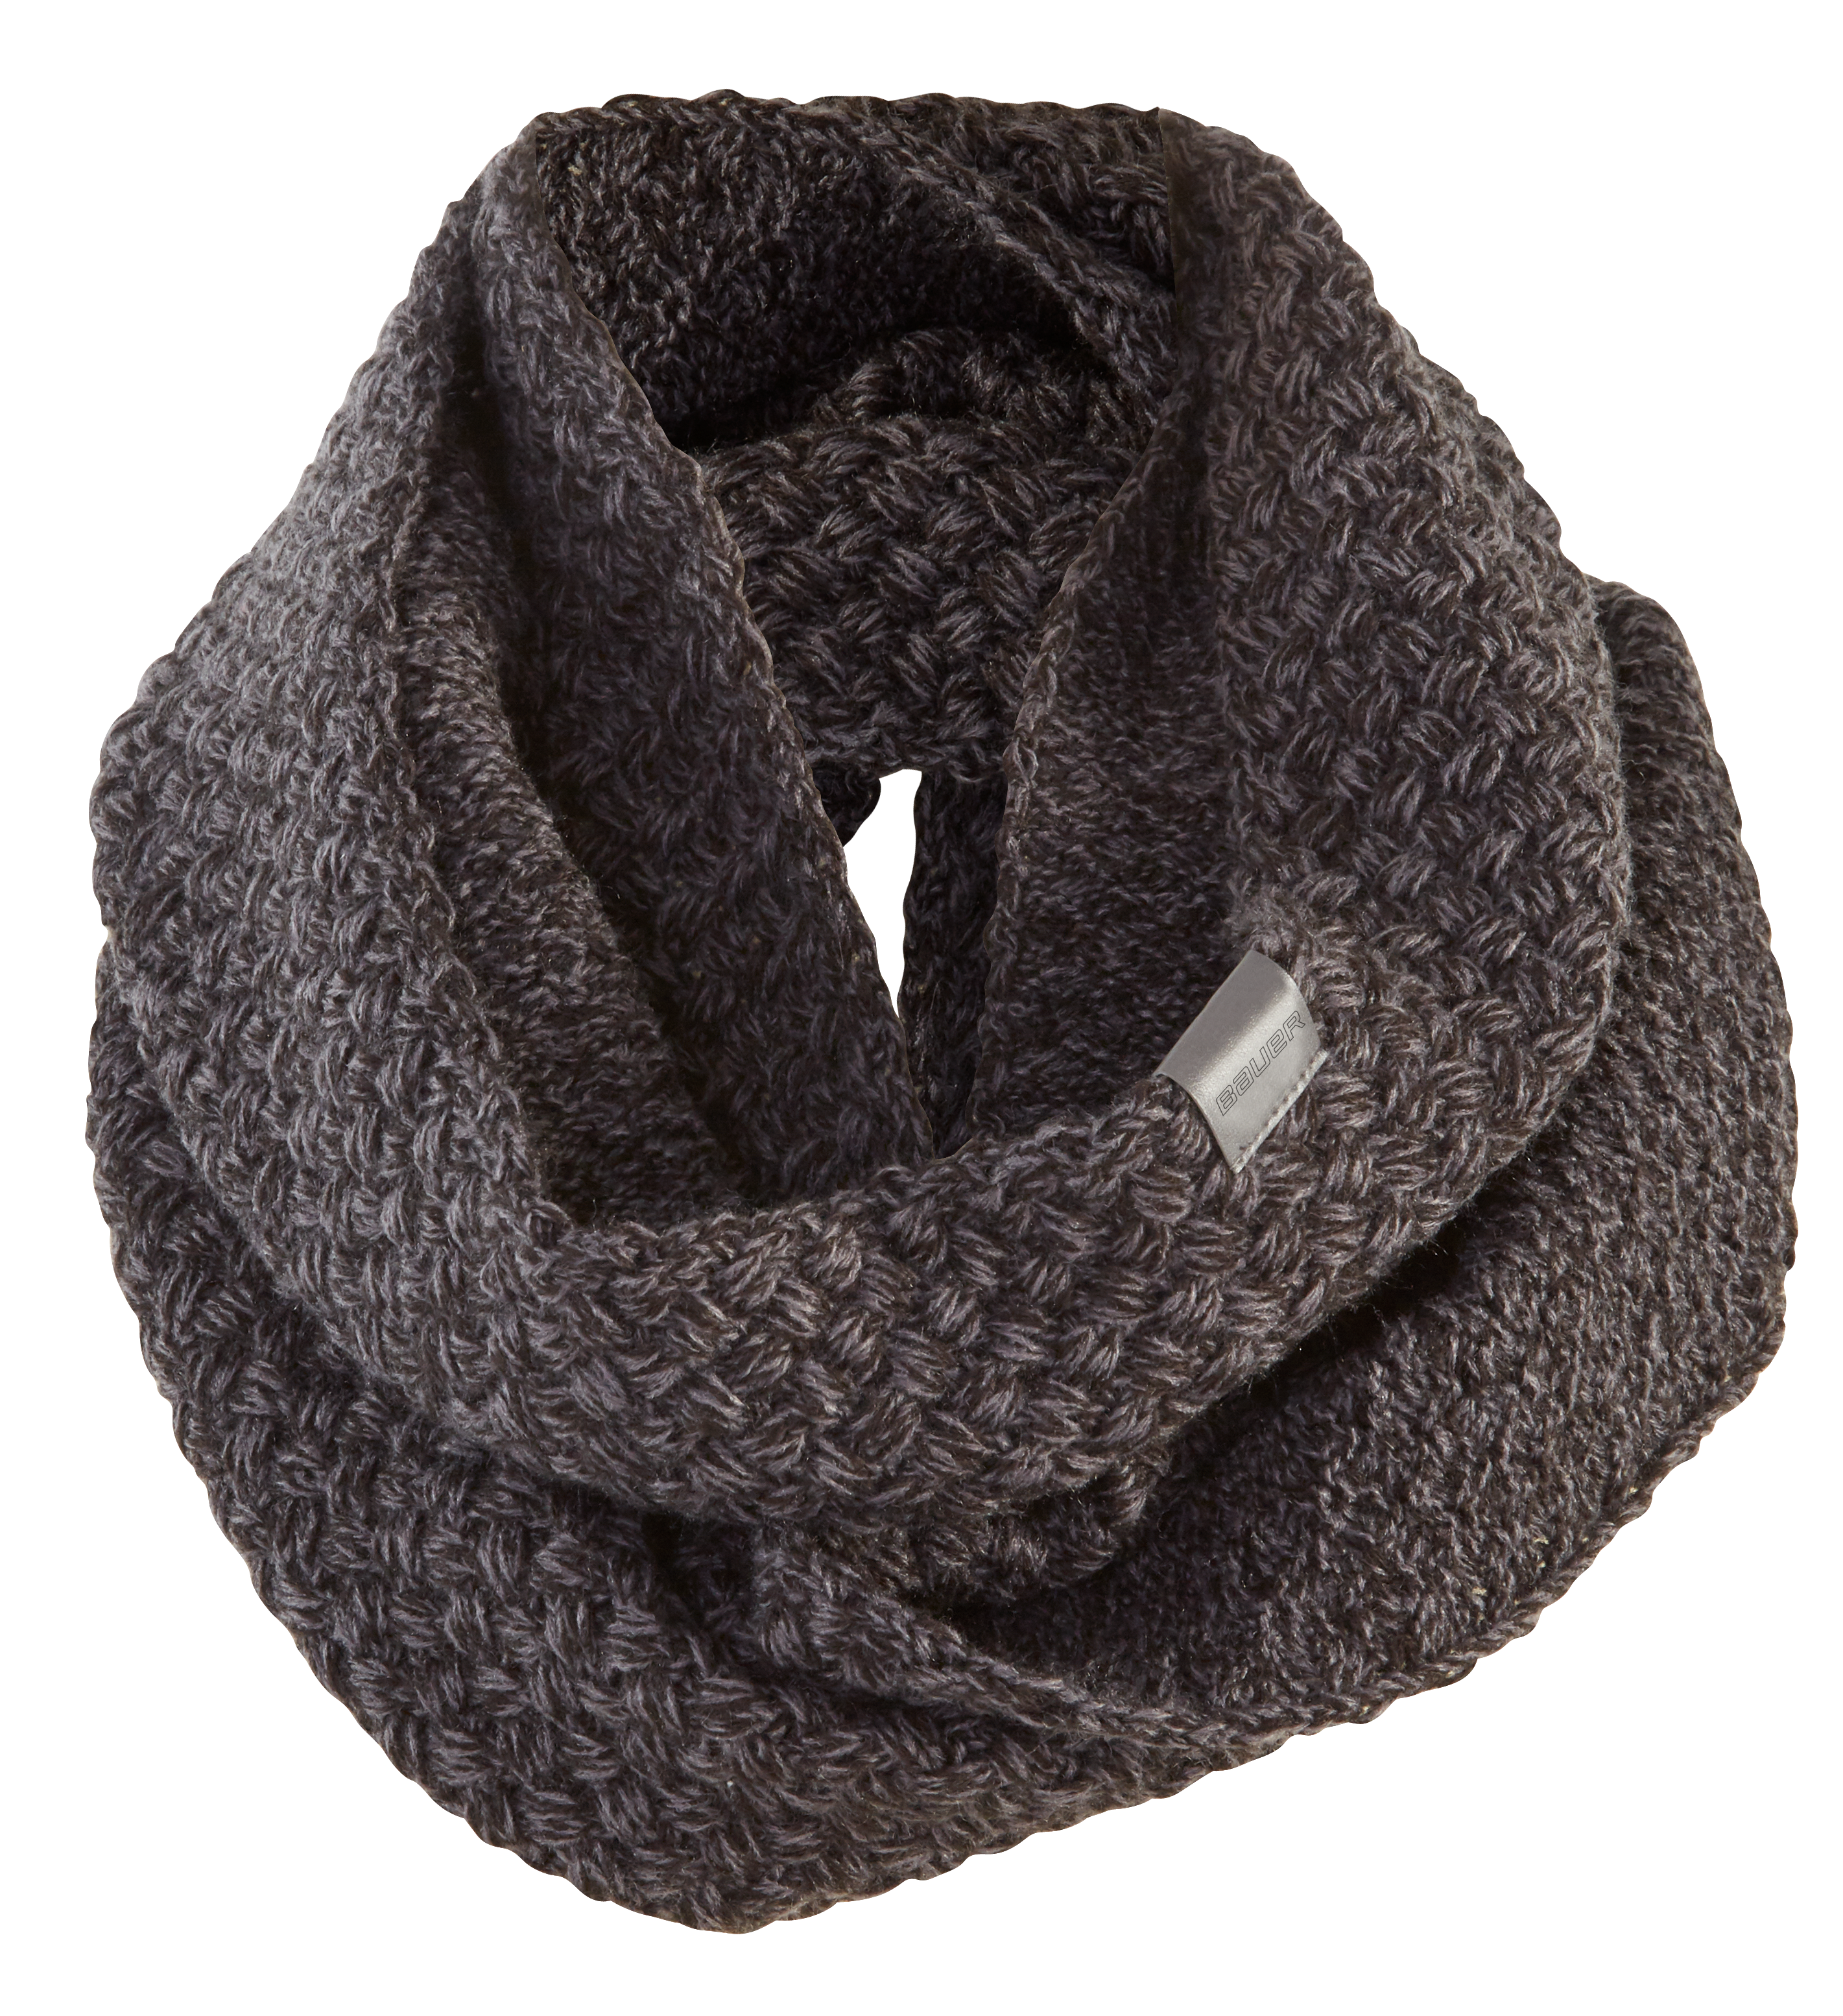 New Era® Zig Zag Knit Scarf Women's,,Размер M